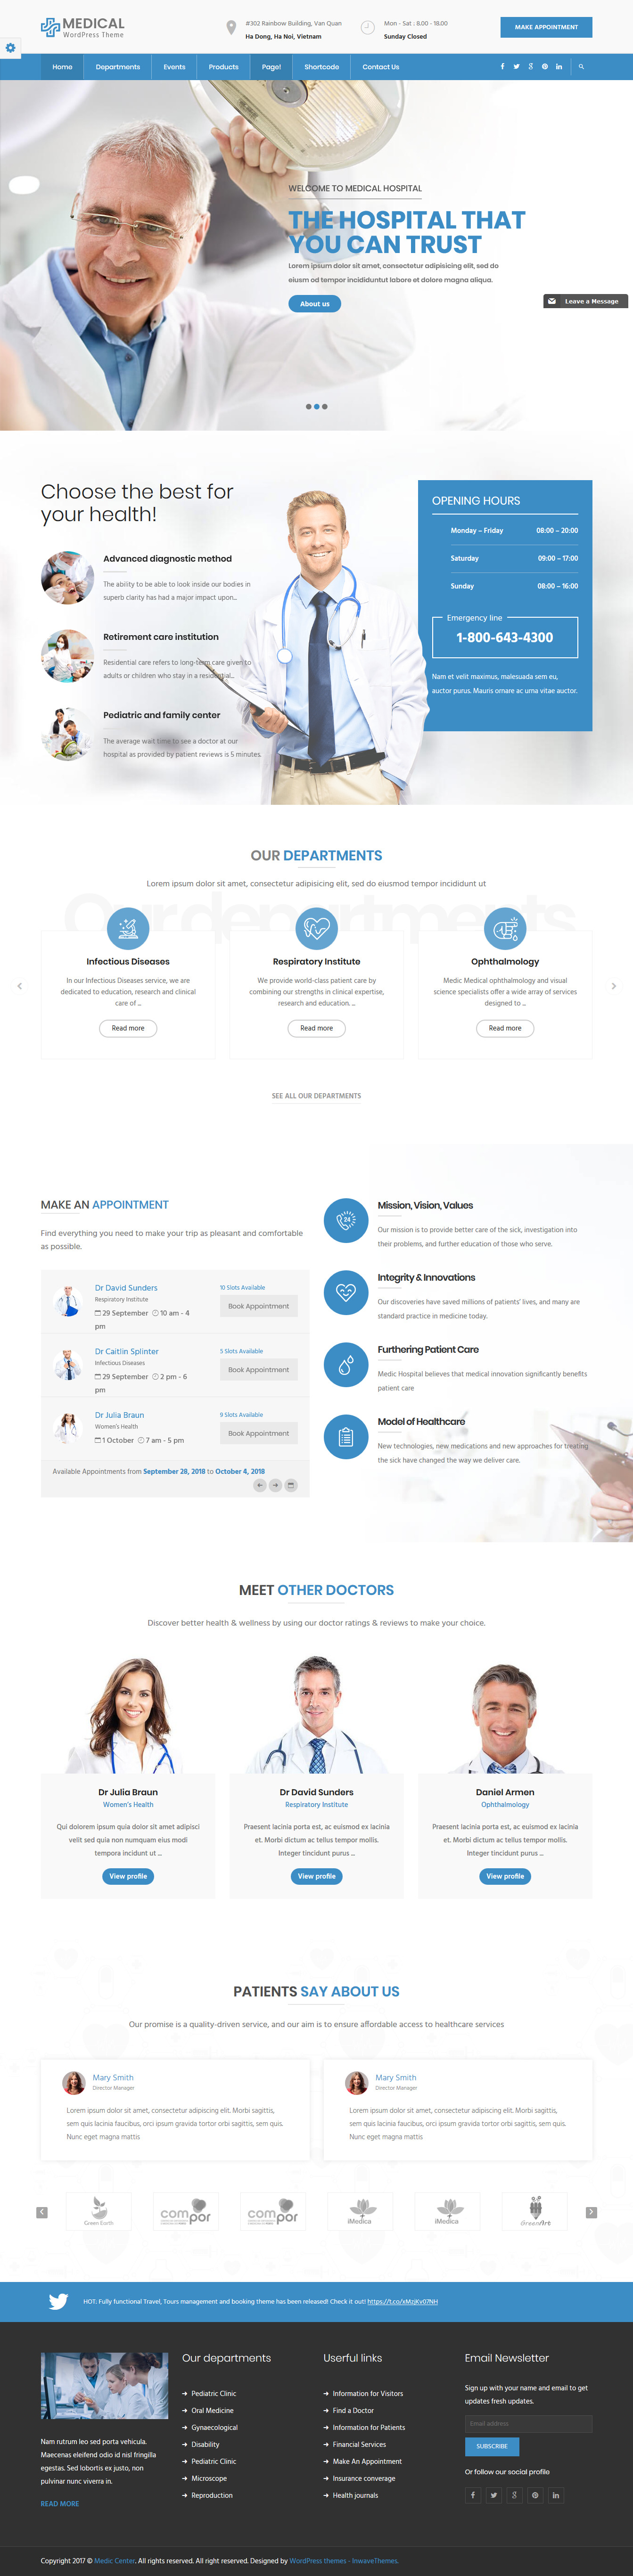 inMedical - Best Premium Hospital WordPress Theme